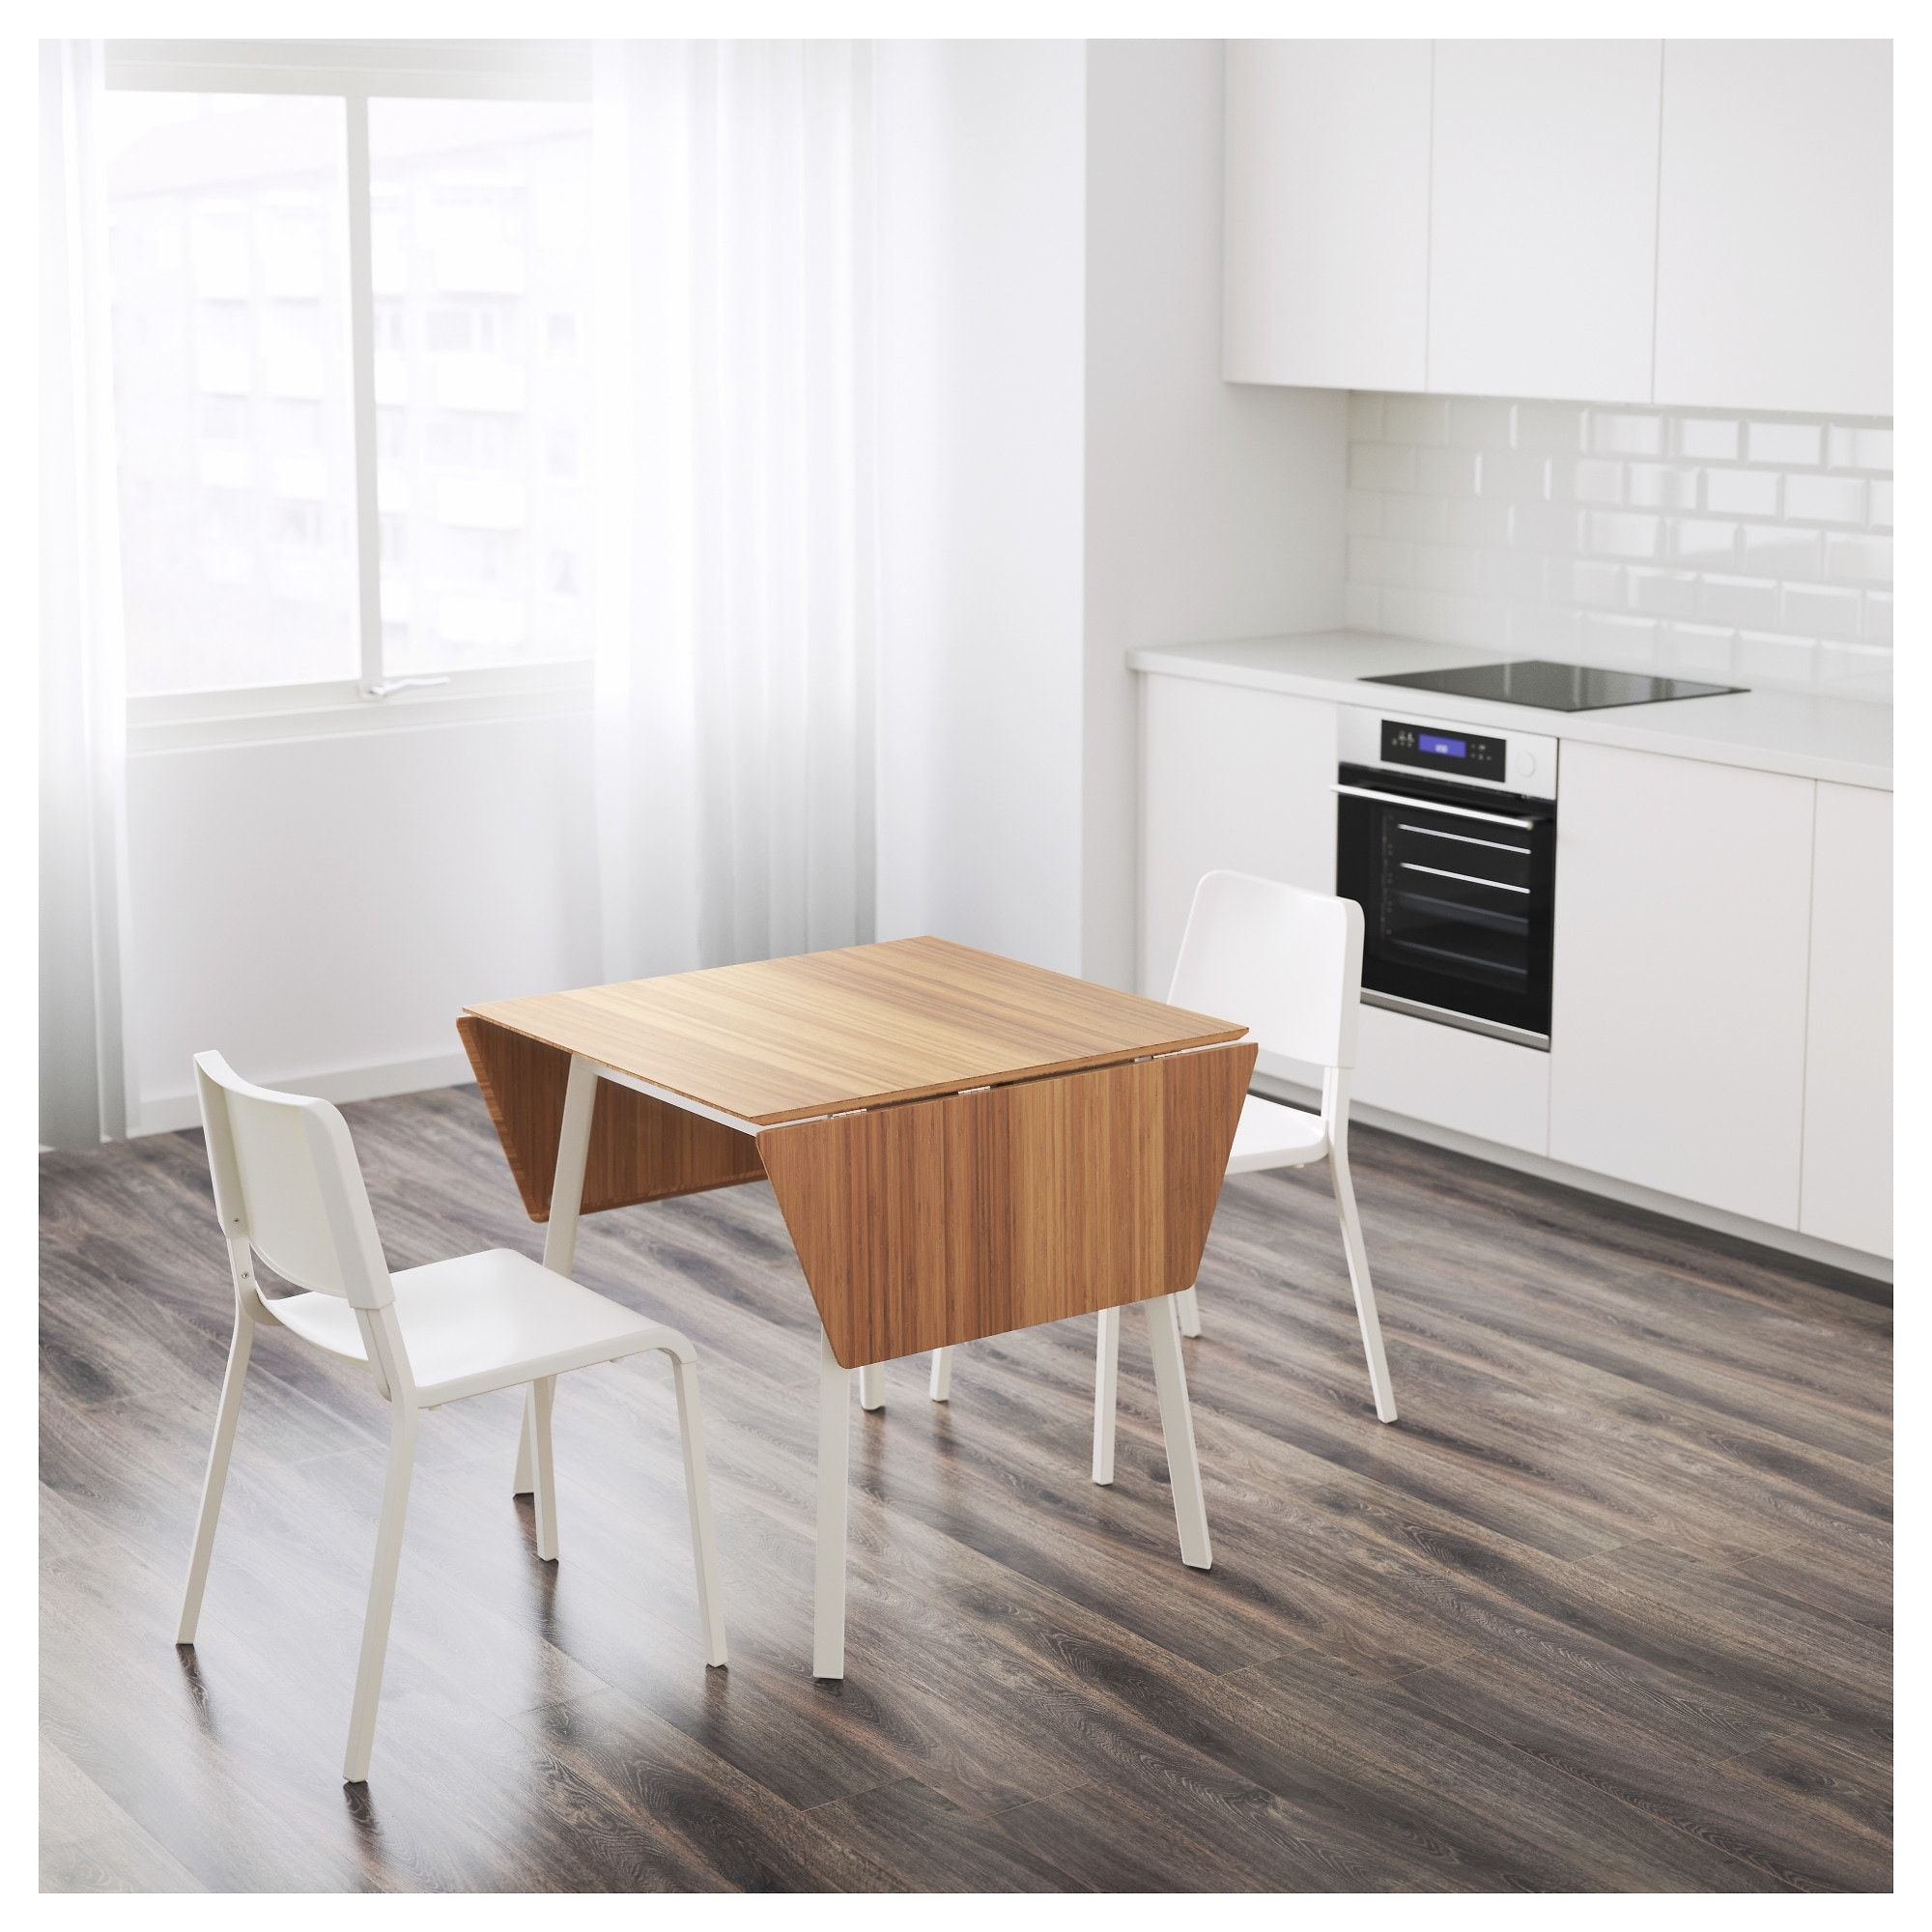 10 Best Ikea Kitchen Tables And Dining Sets Small Space Dining Tables From Ikea